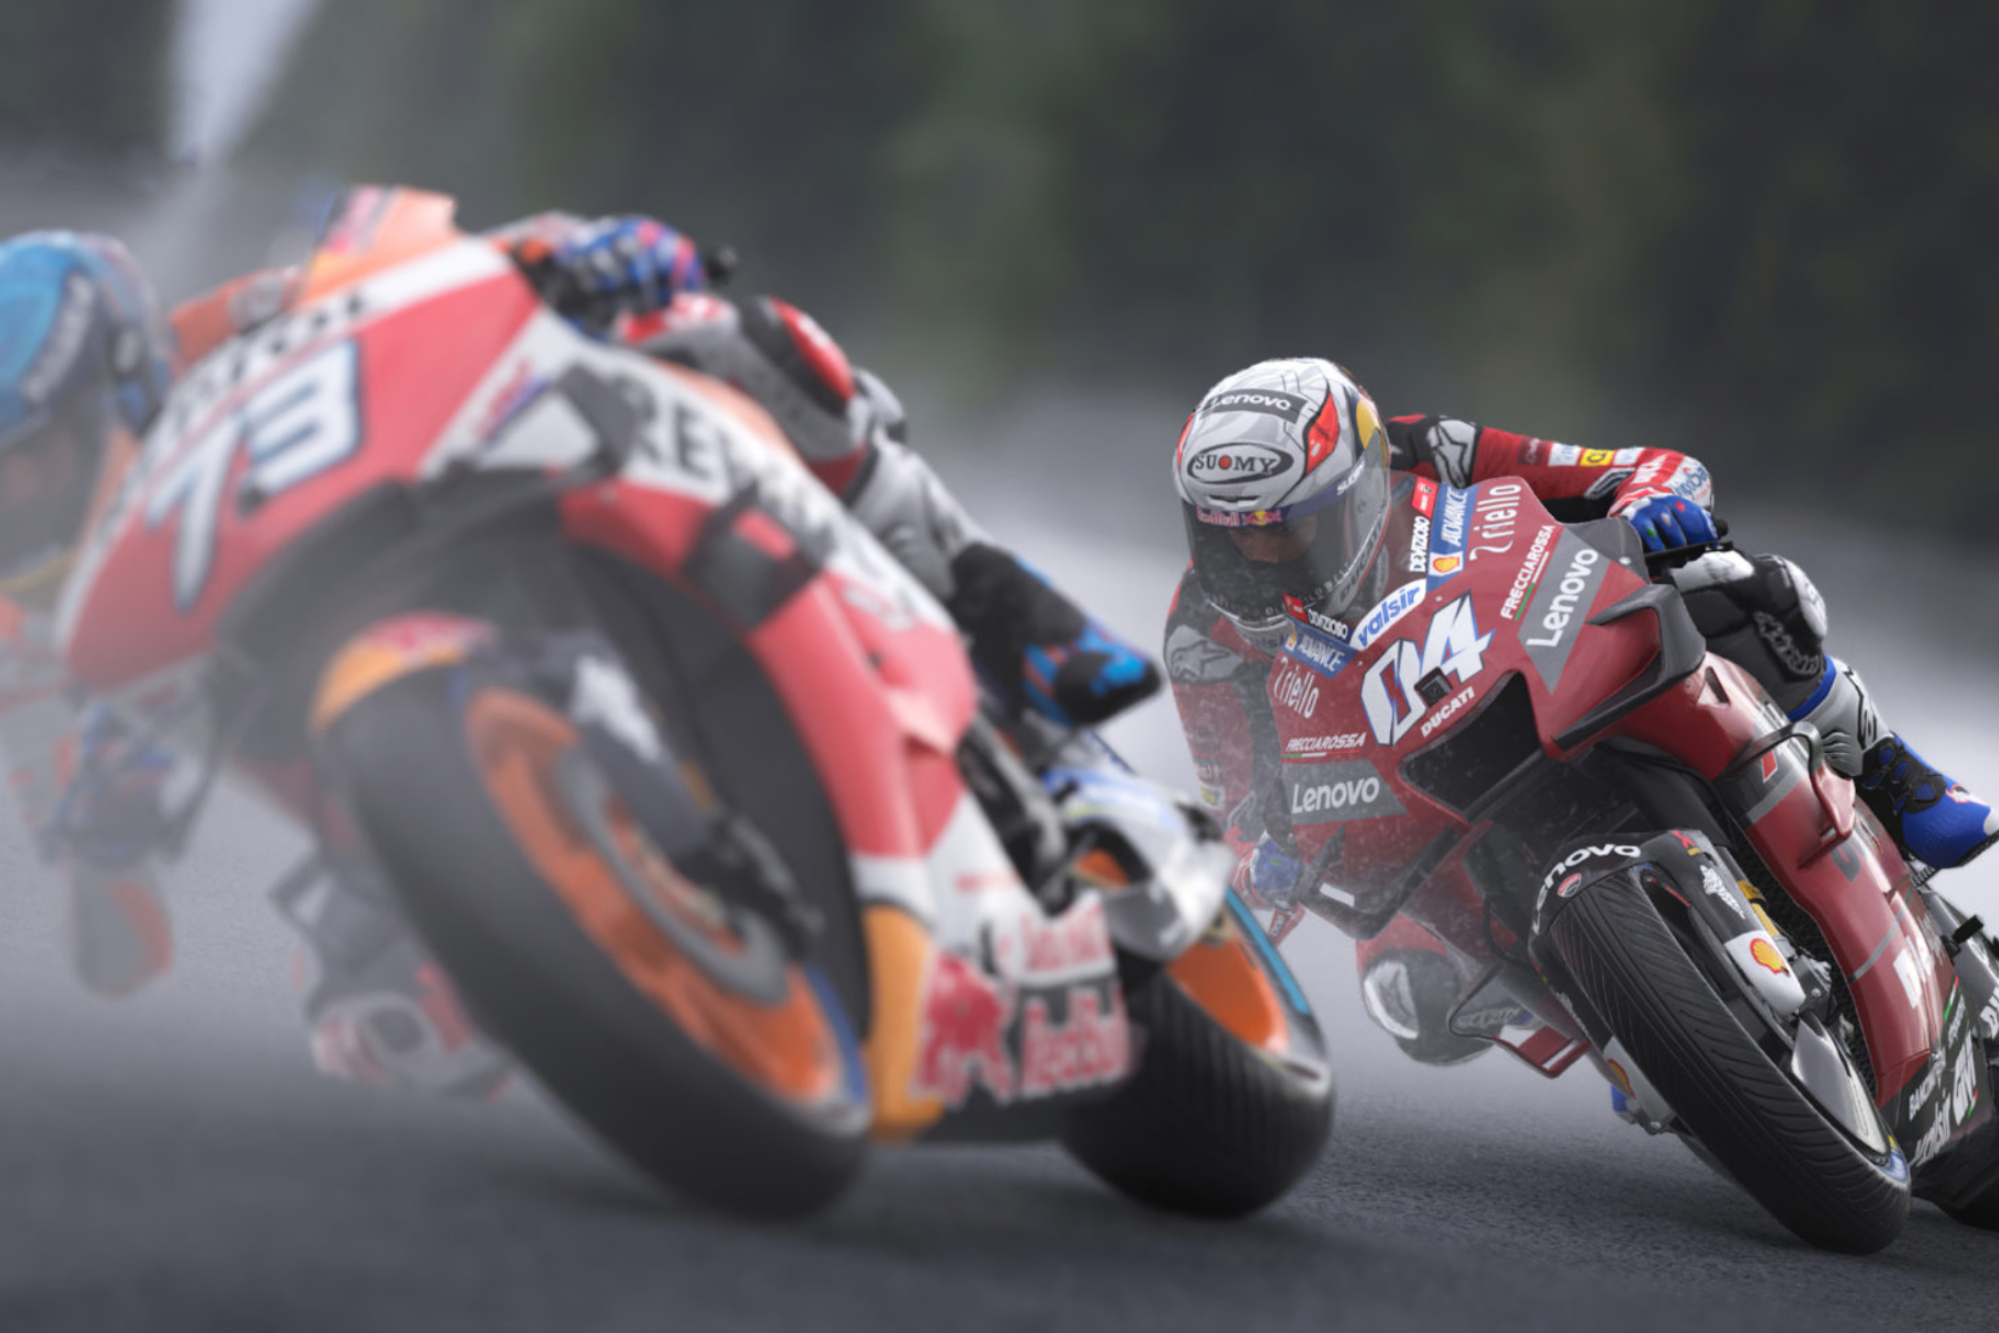 MotoGP 20 review